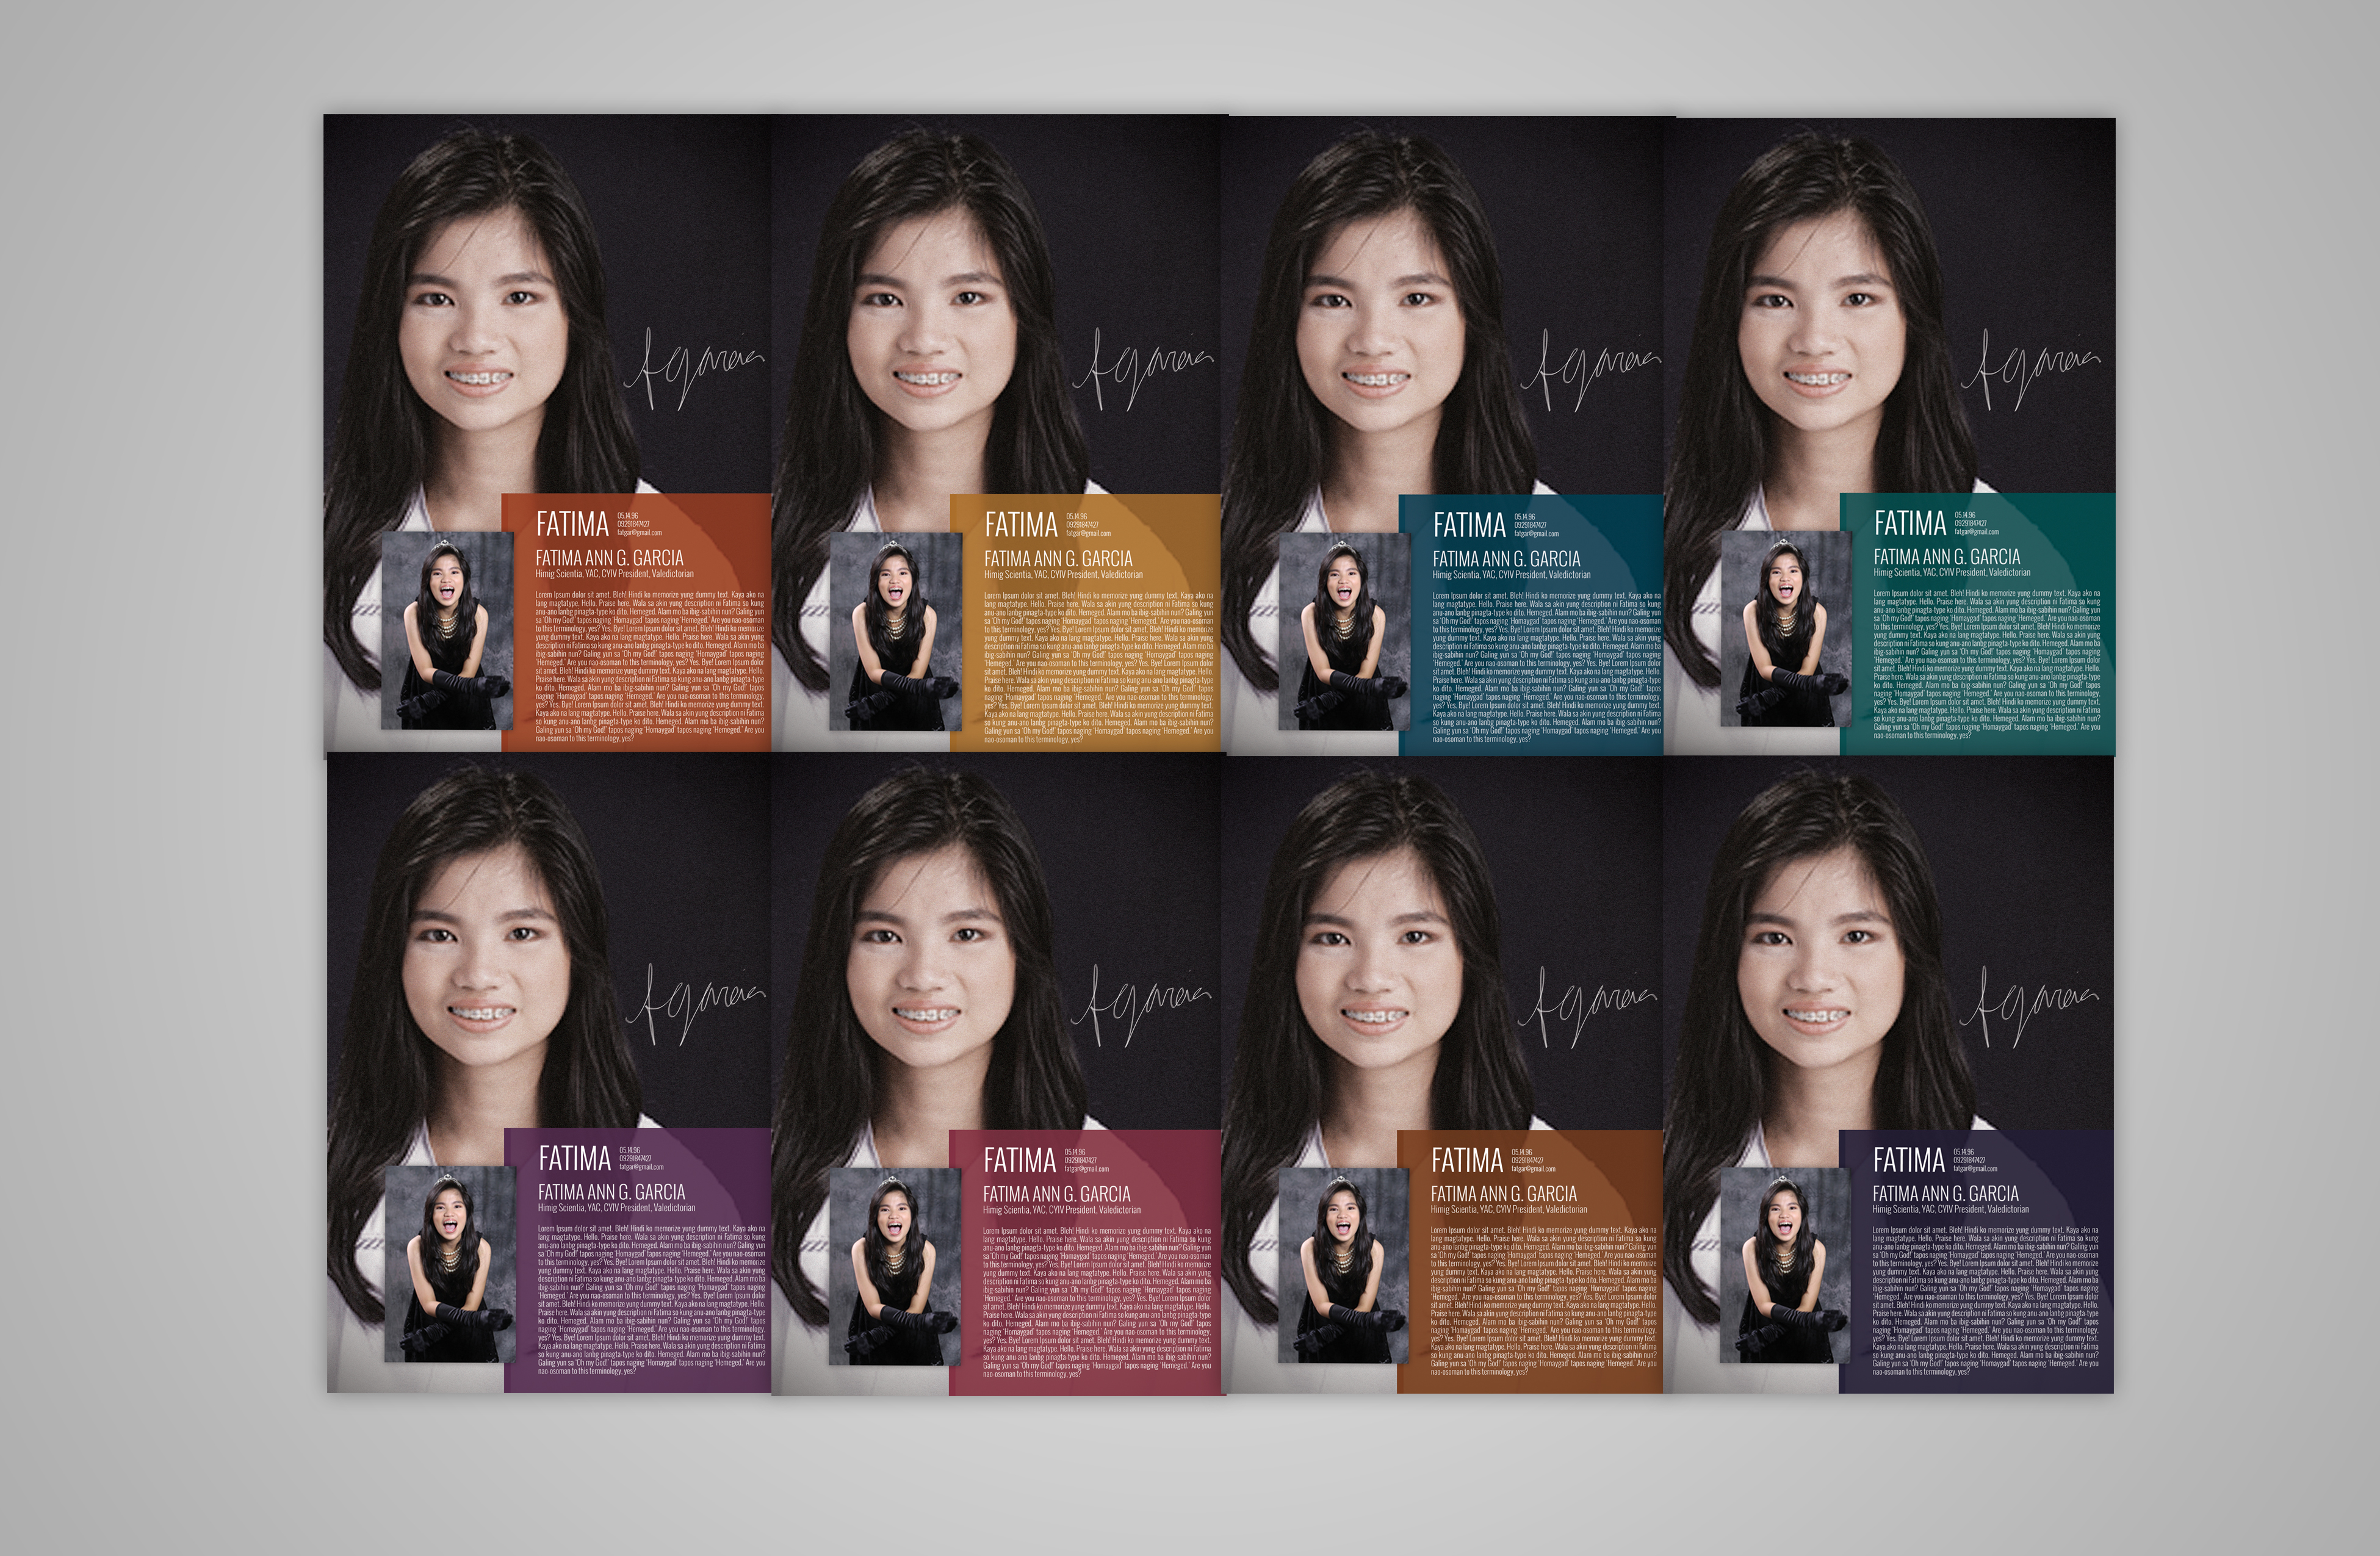 1000 images about yearbook profile ideas on pinterest for Interior design yearbook